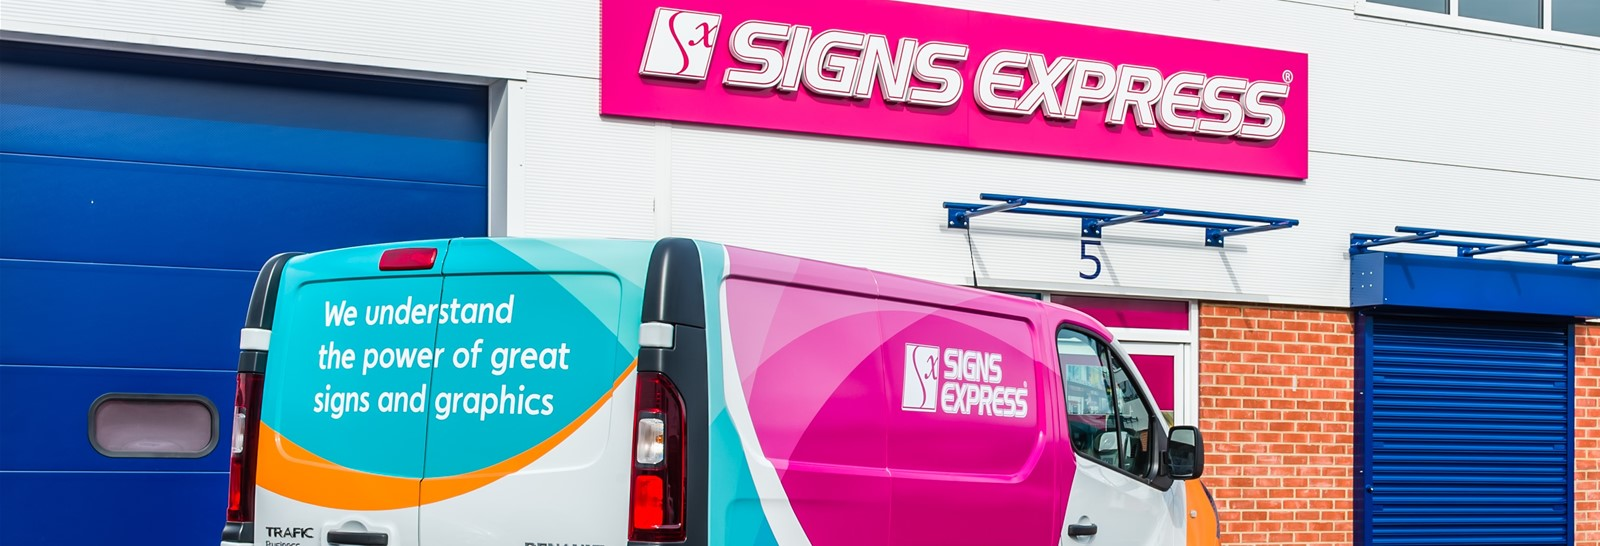 Signs Express Vehicle Graphic